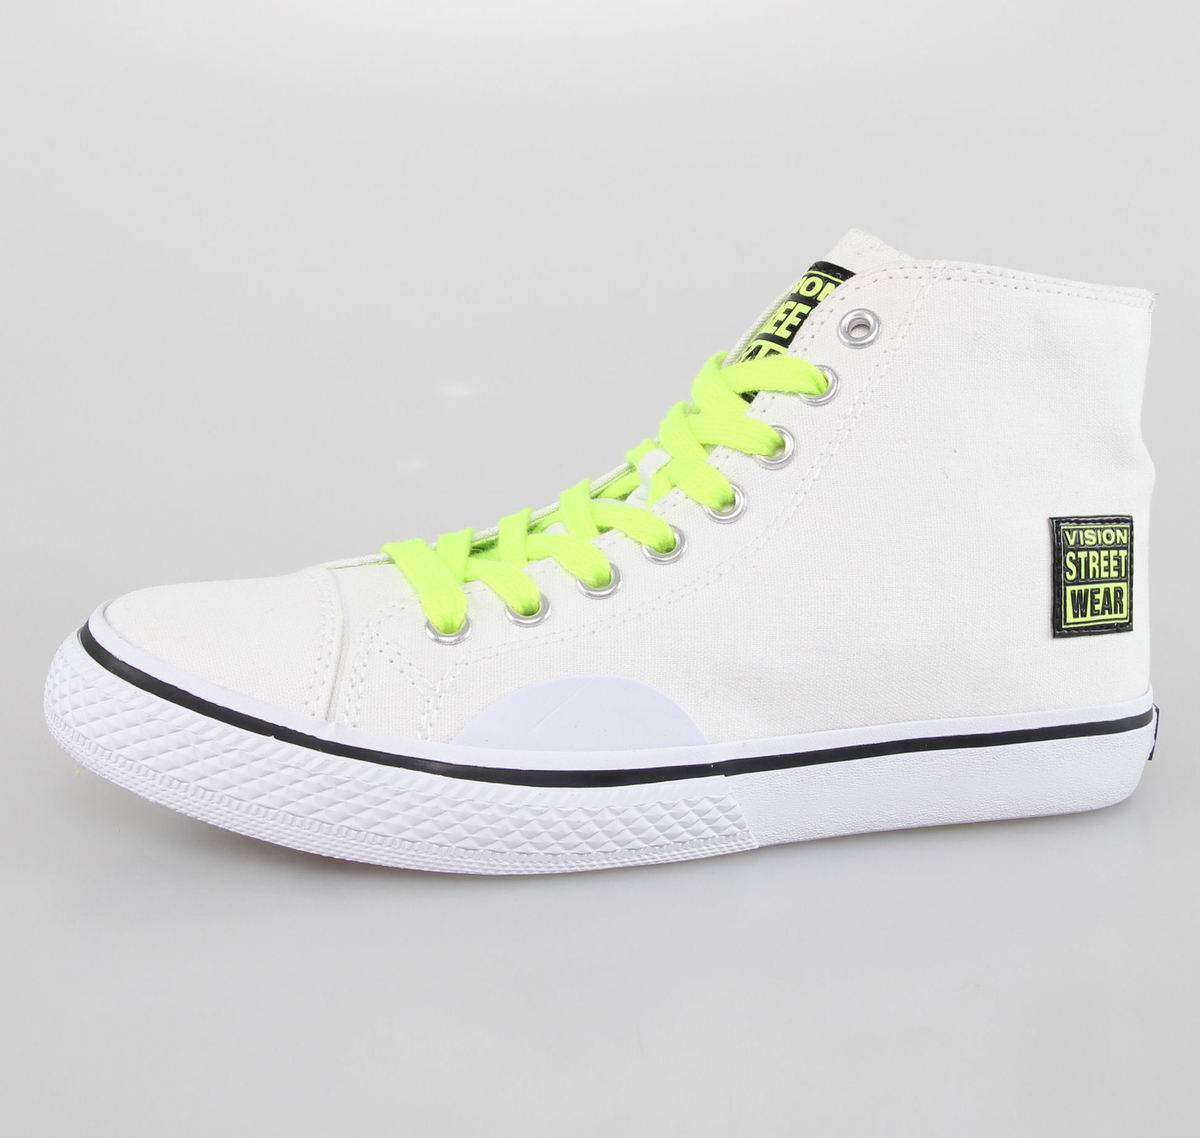 boty dámské VISION - Canvas HI - White/Safety Yellow - VWF4FWCH02